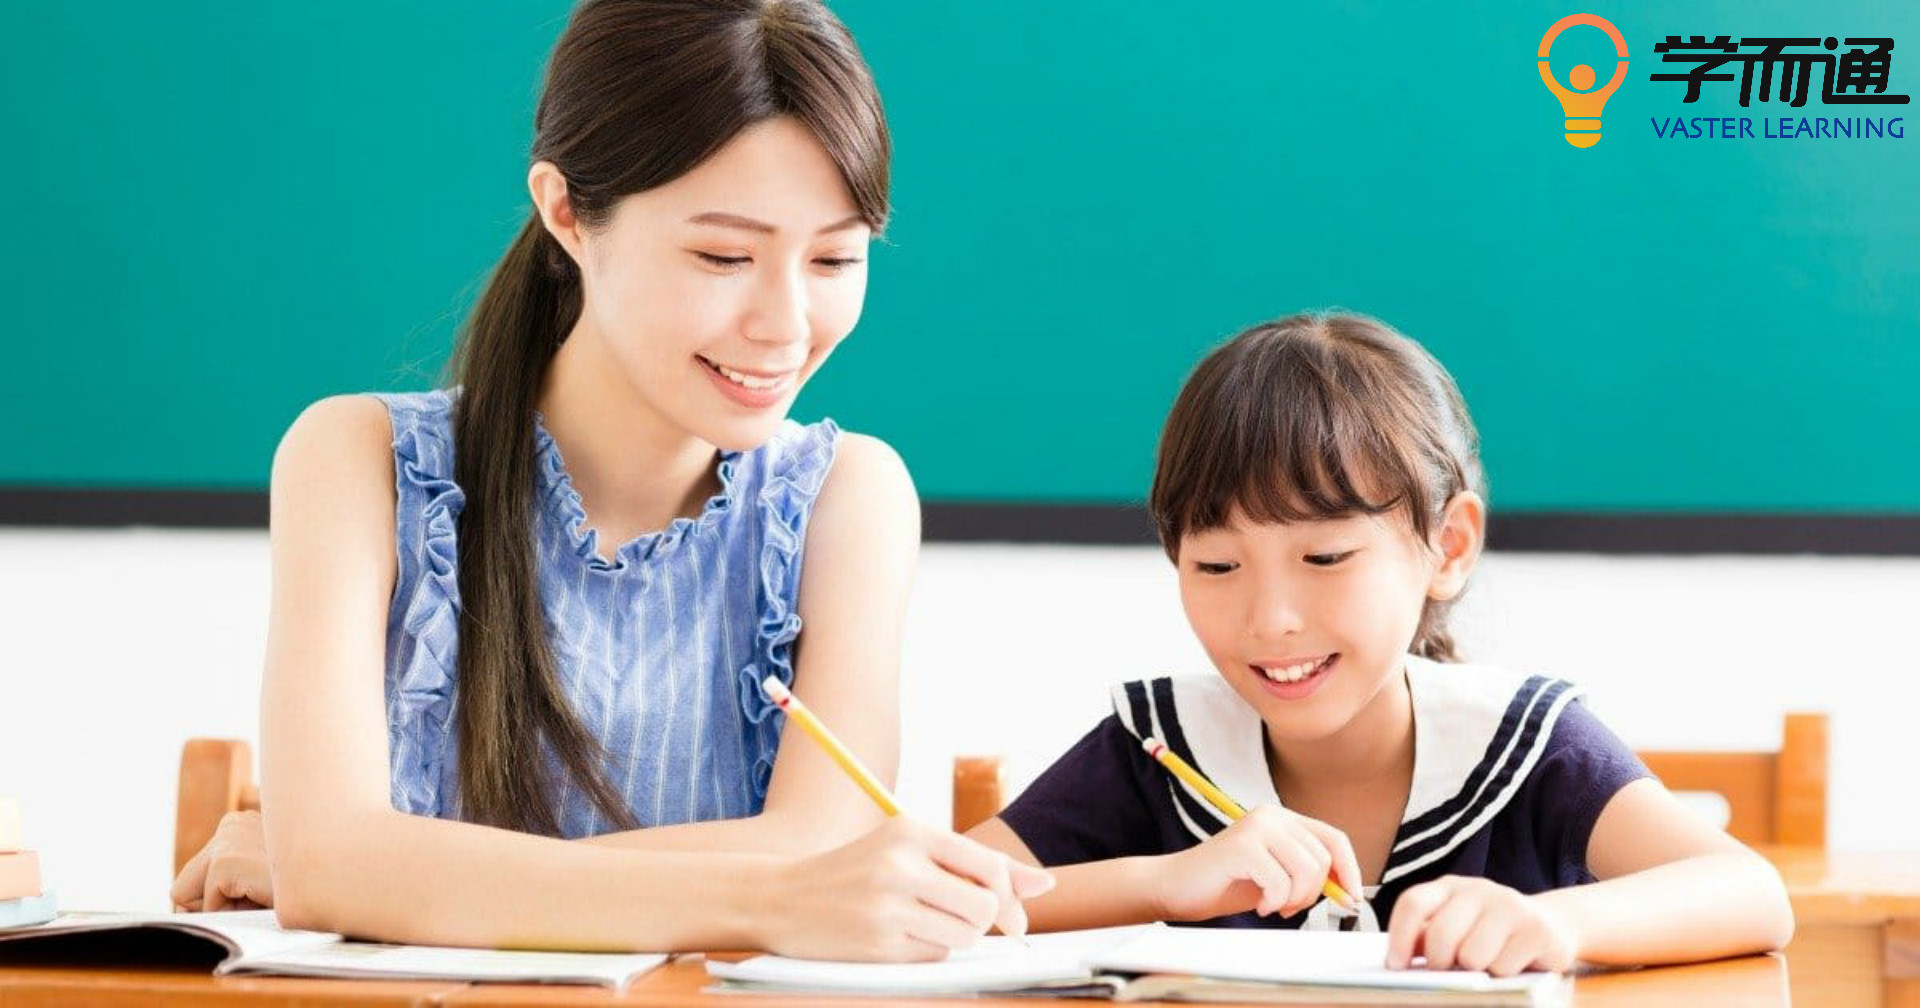 young-teacher-helping-child-with-writing-lesson-picture-id819671198.jpg